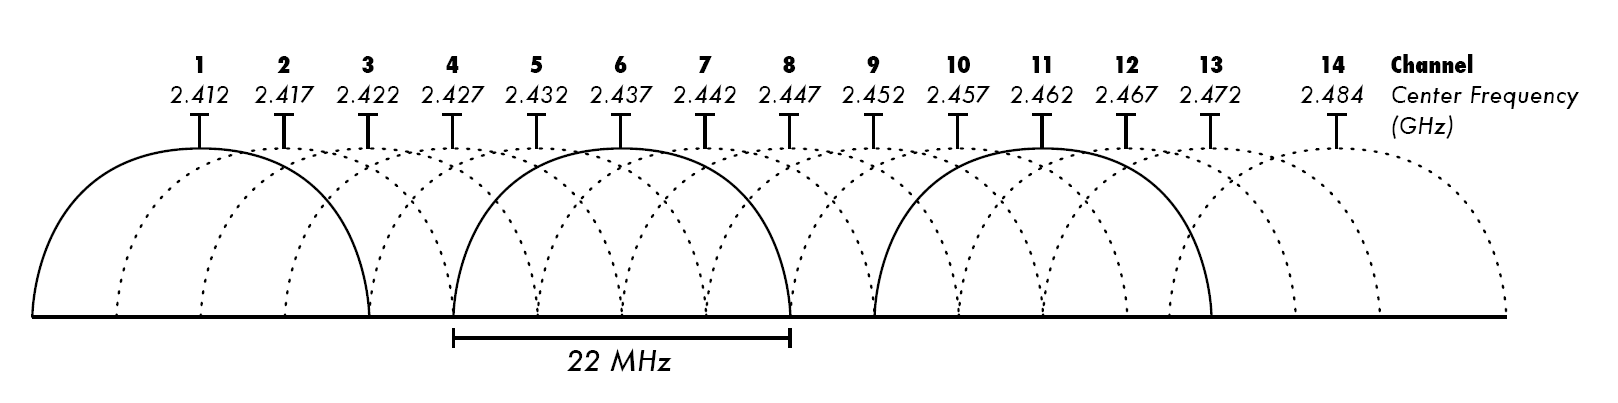 "Counting the ""shoulder,"" a 20MHz wide 2.4GHz spectrum ""channel"" actually occupies a little more than four actual 5MHz channels."